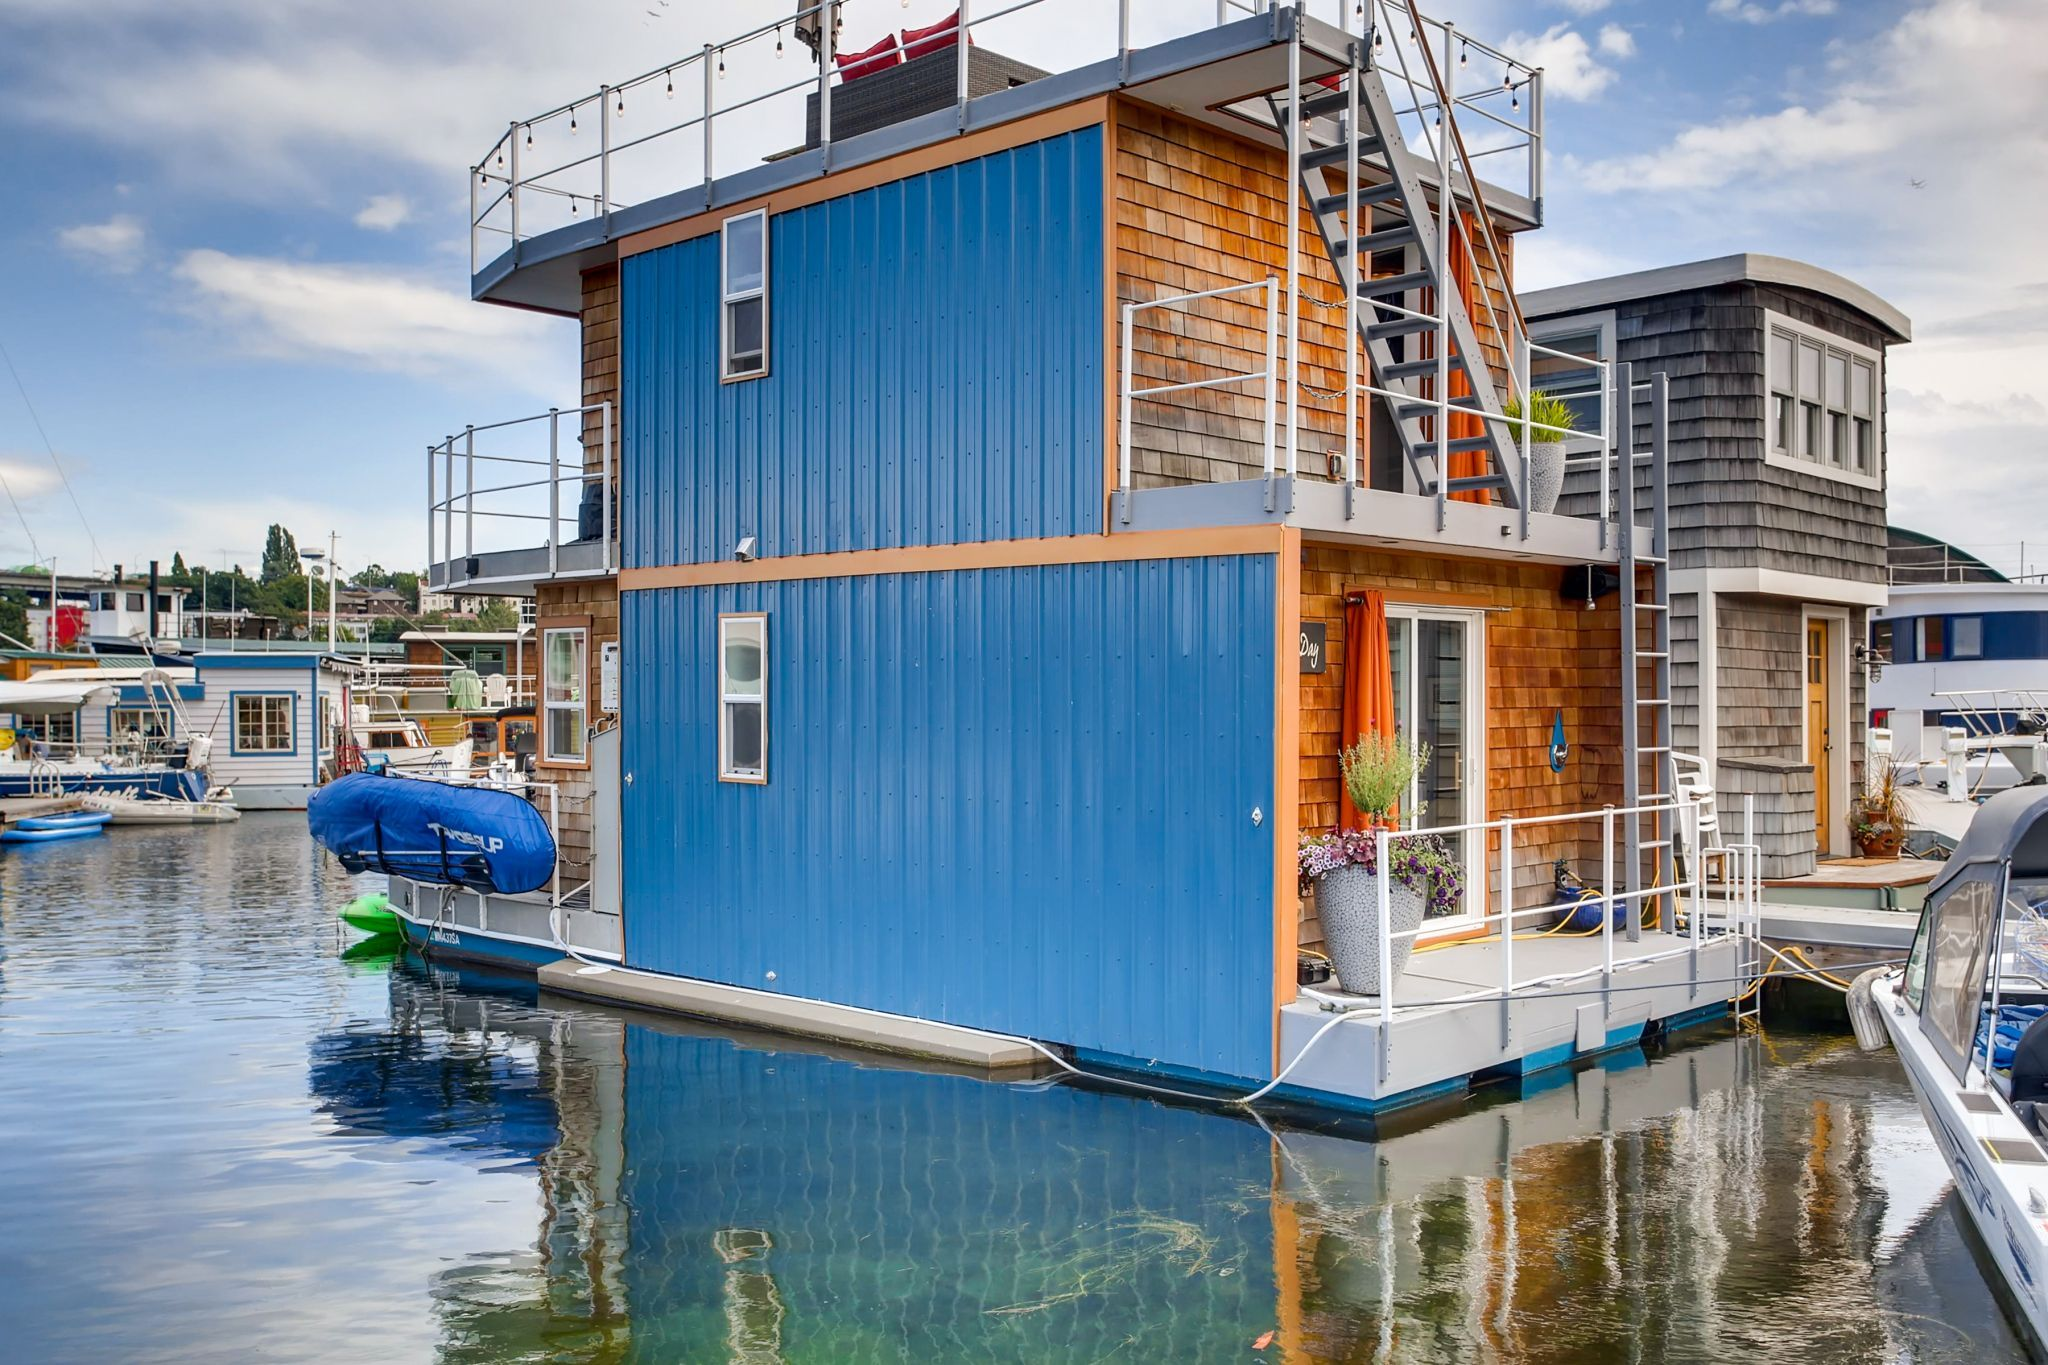 At 489k small but clever houseboat lives twice its size